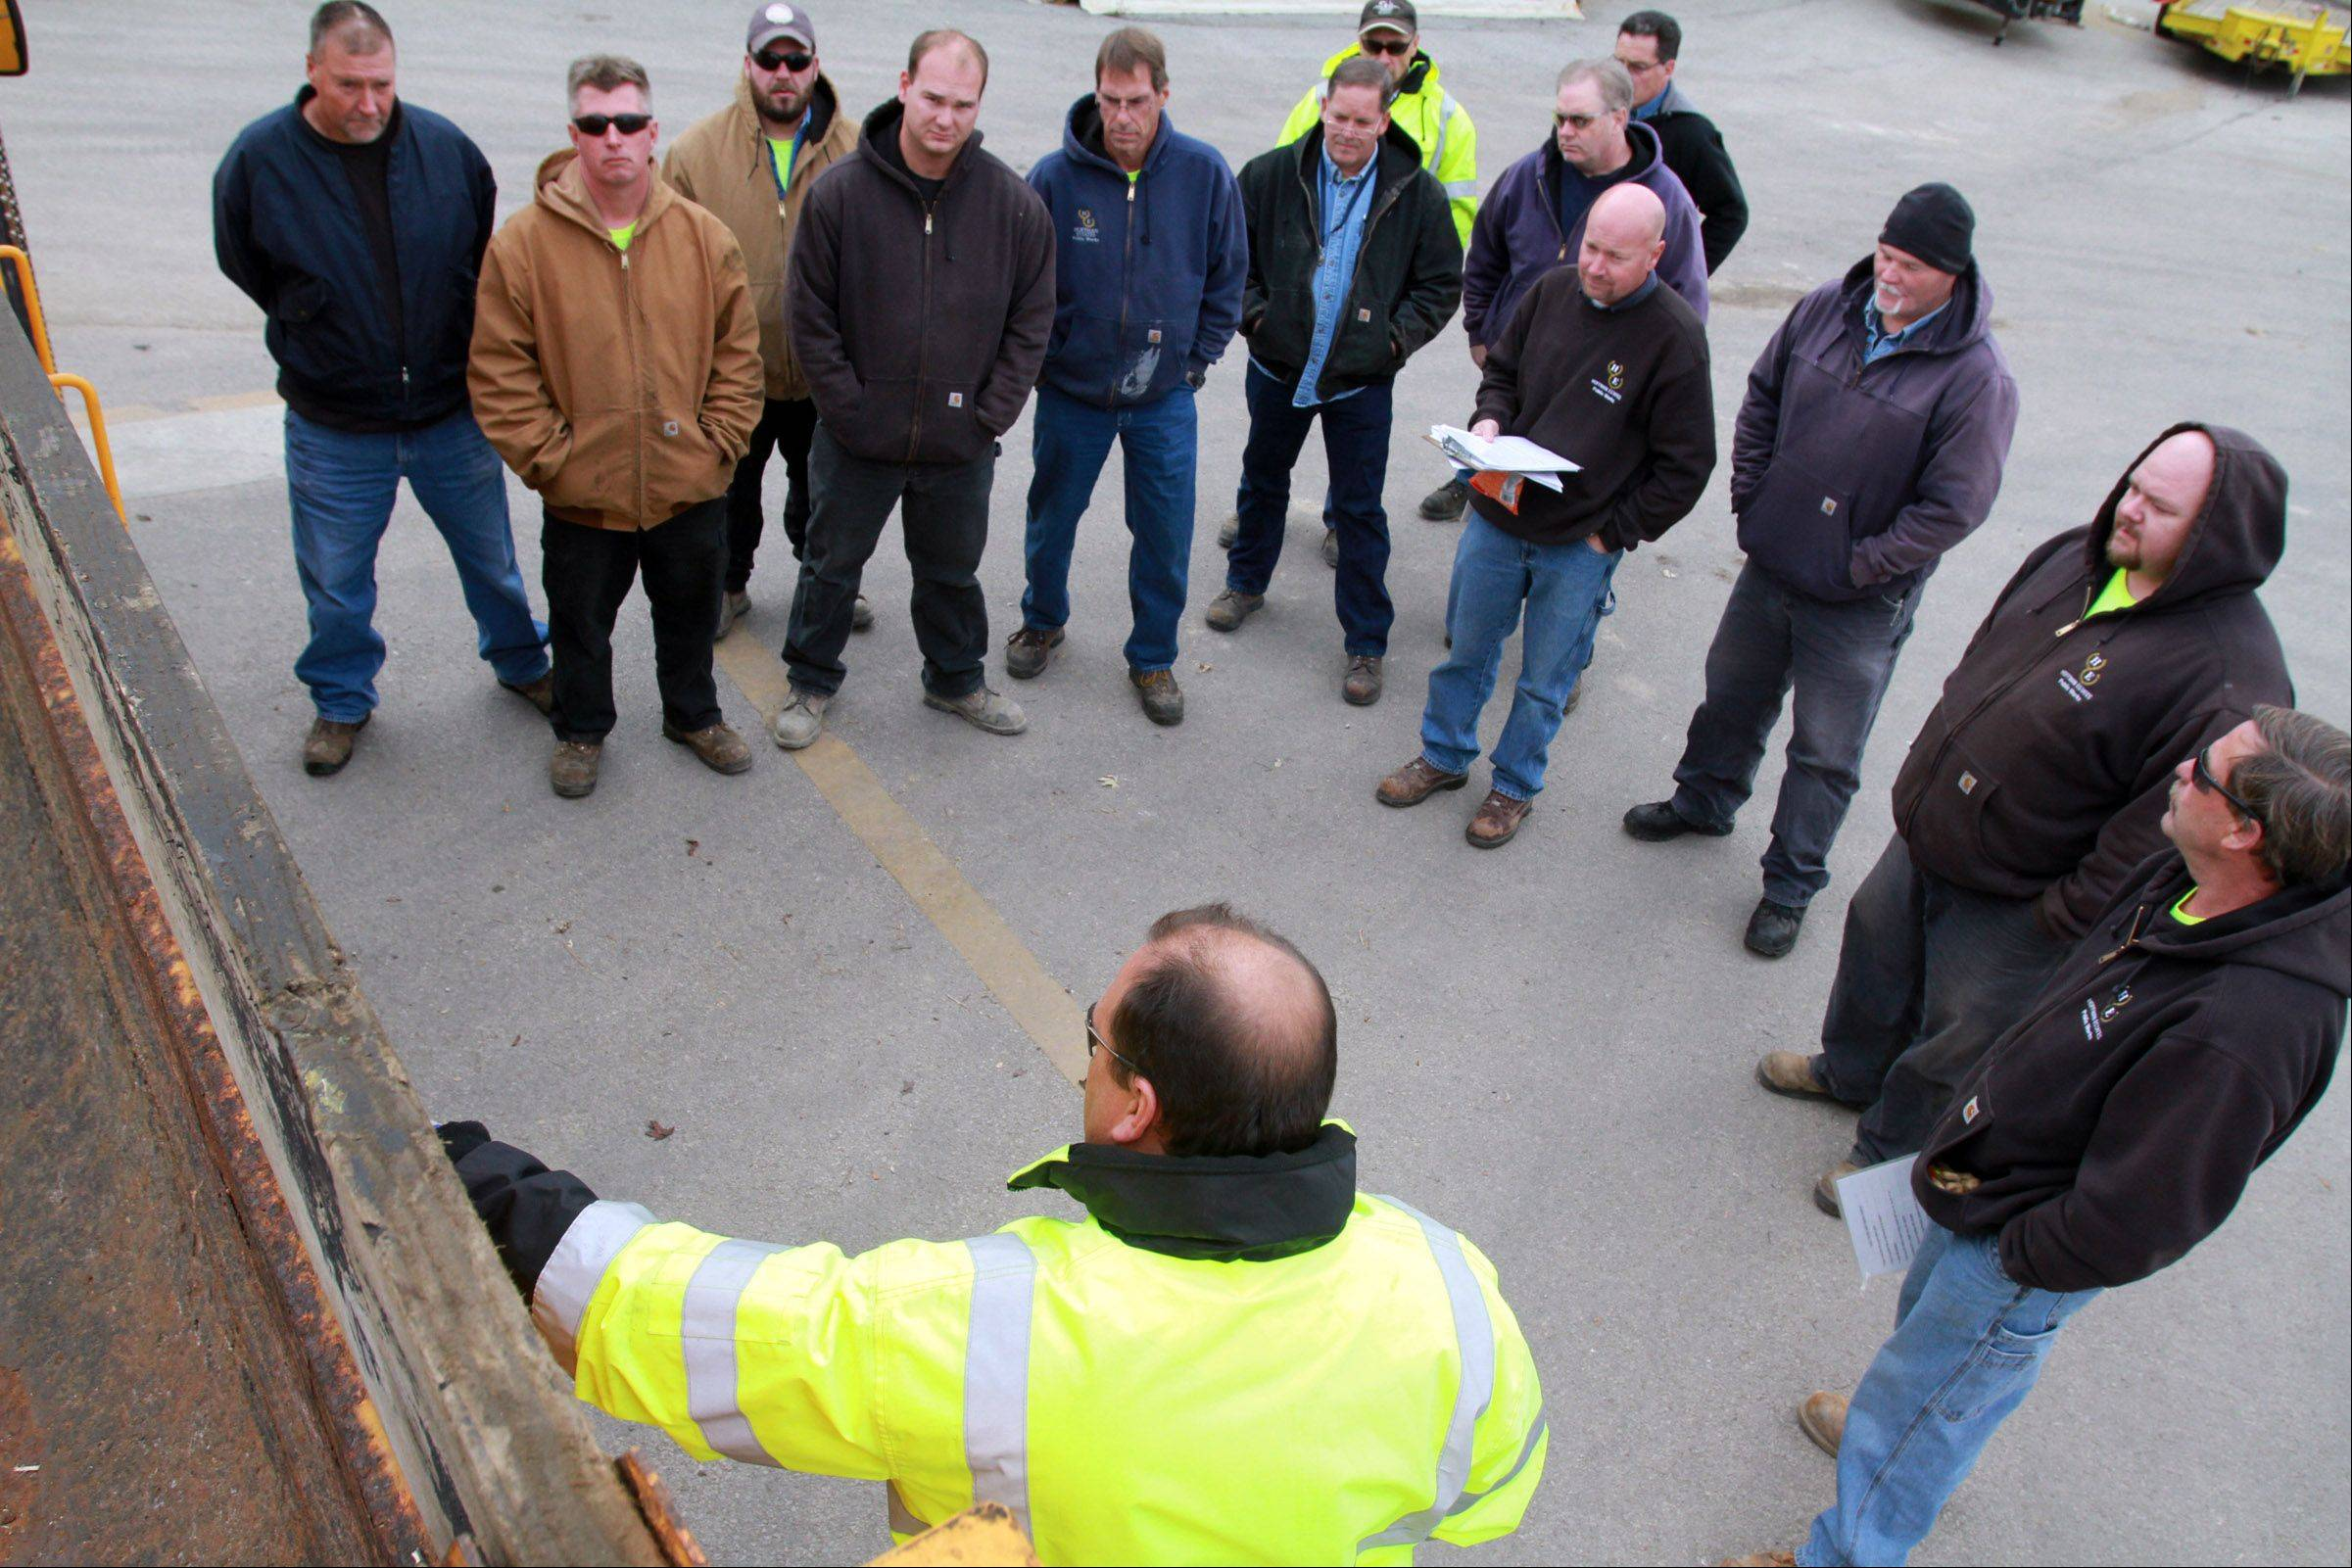 Hoffman Estates Public Works Department maintenance employee Jim Finn teaches drivers how to apply different liquid mixes to the roads to melt ice and snow during training Thursday.